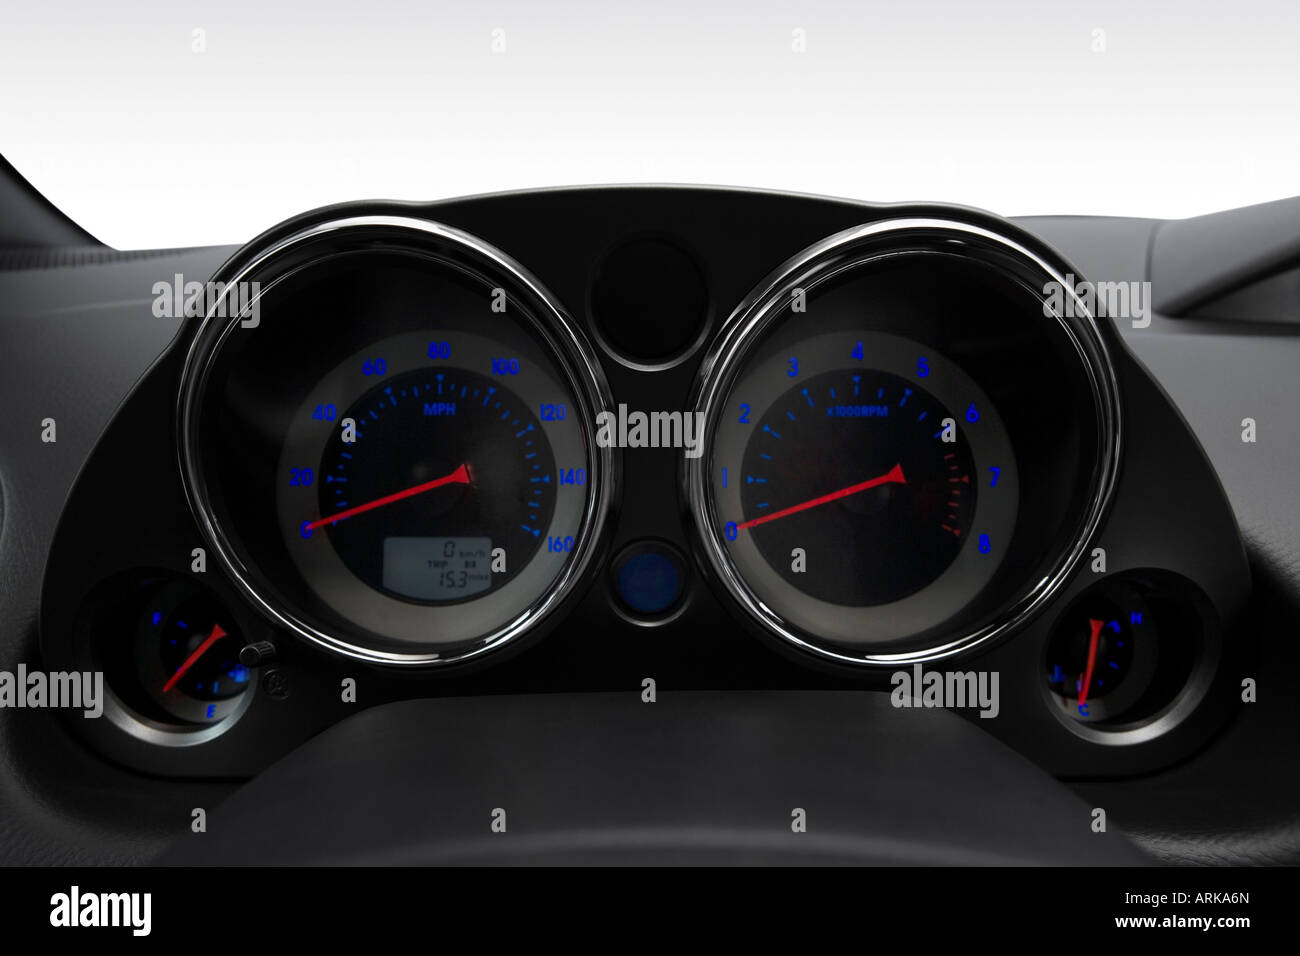 2001 Mitsubishi Eclipse Tachometer Free Download Equus 6088 Tach Wiring Diagram Stock Photos Images 2005 At